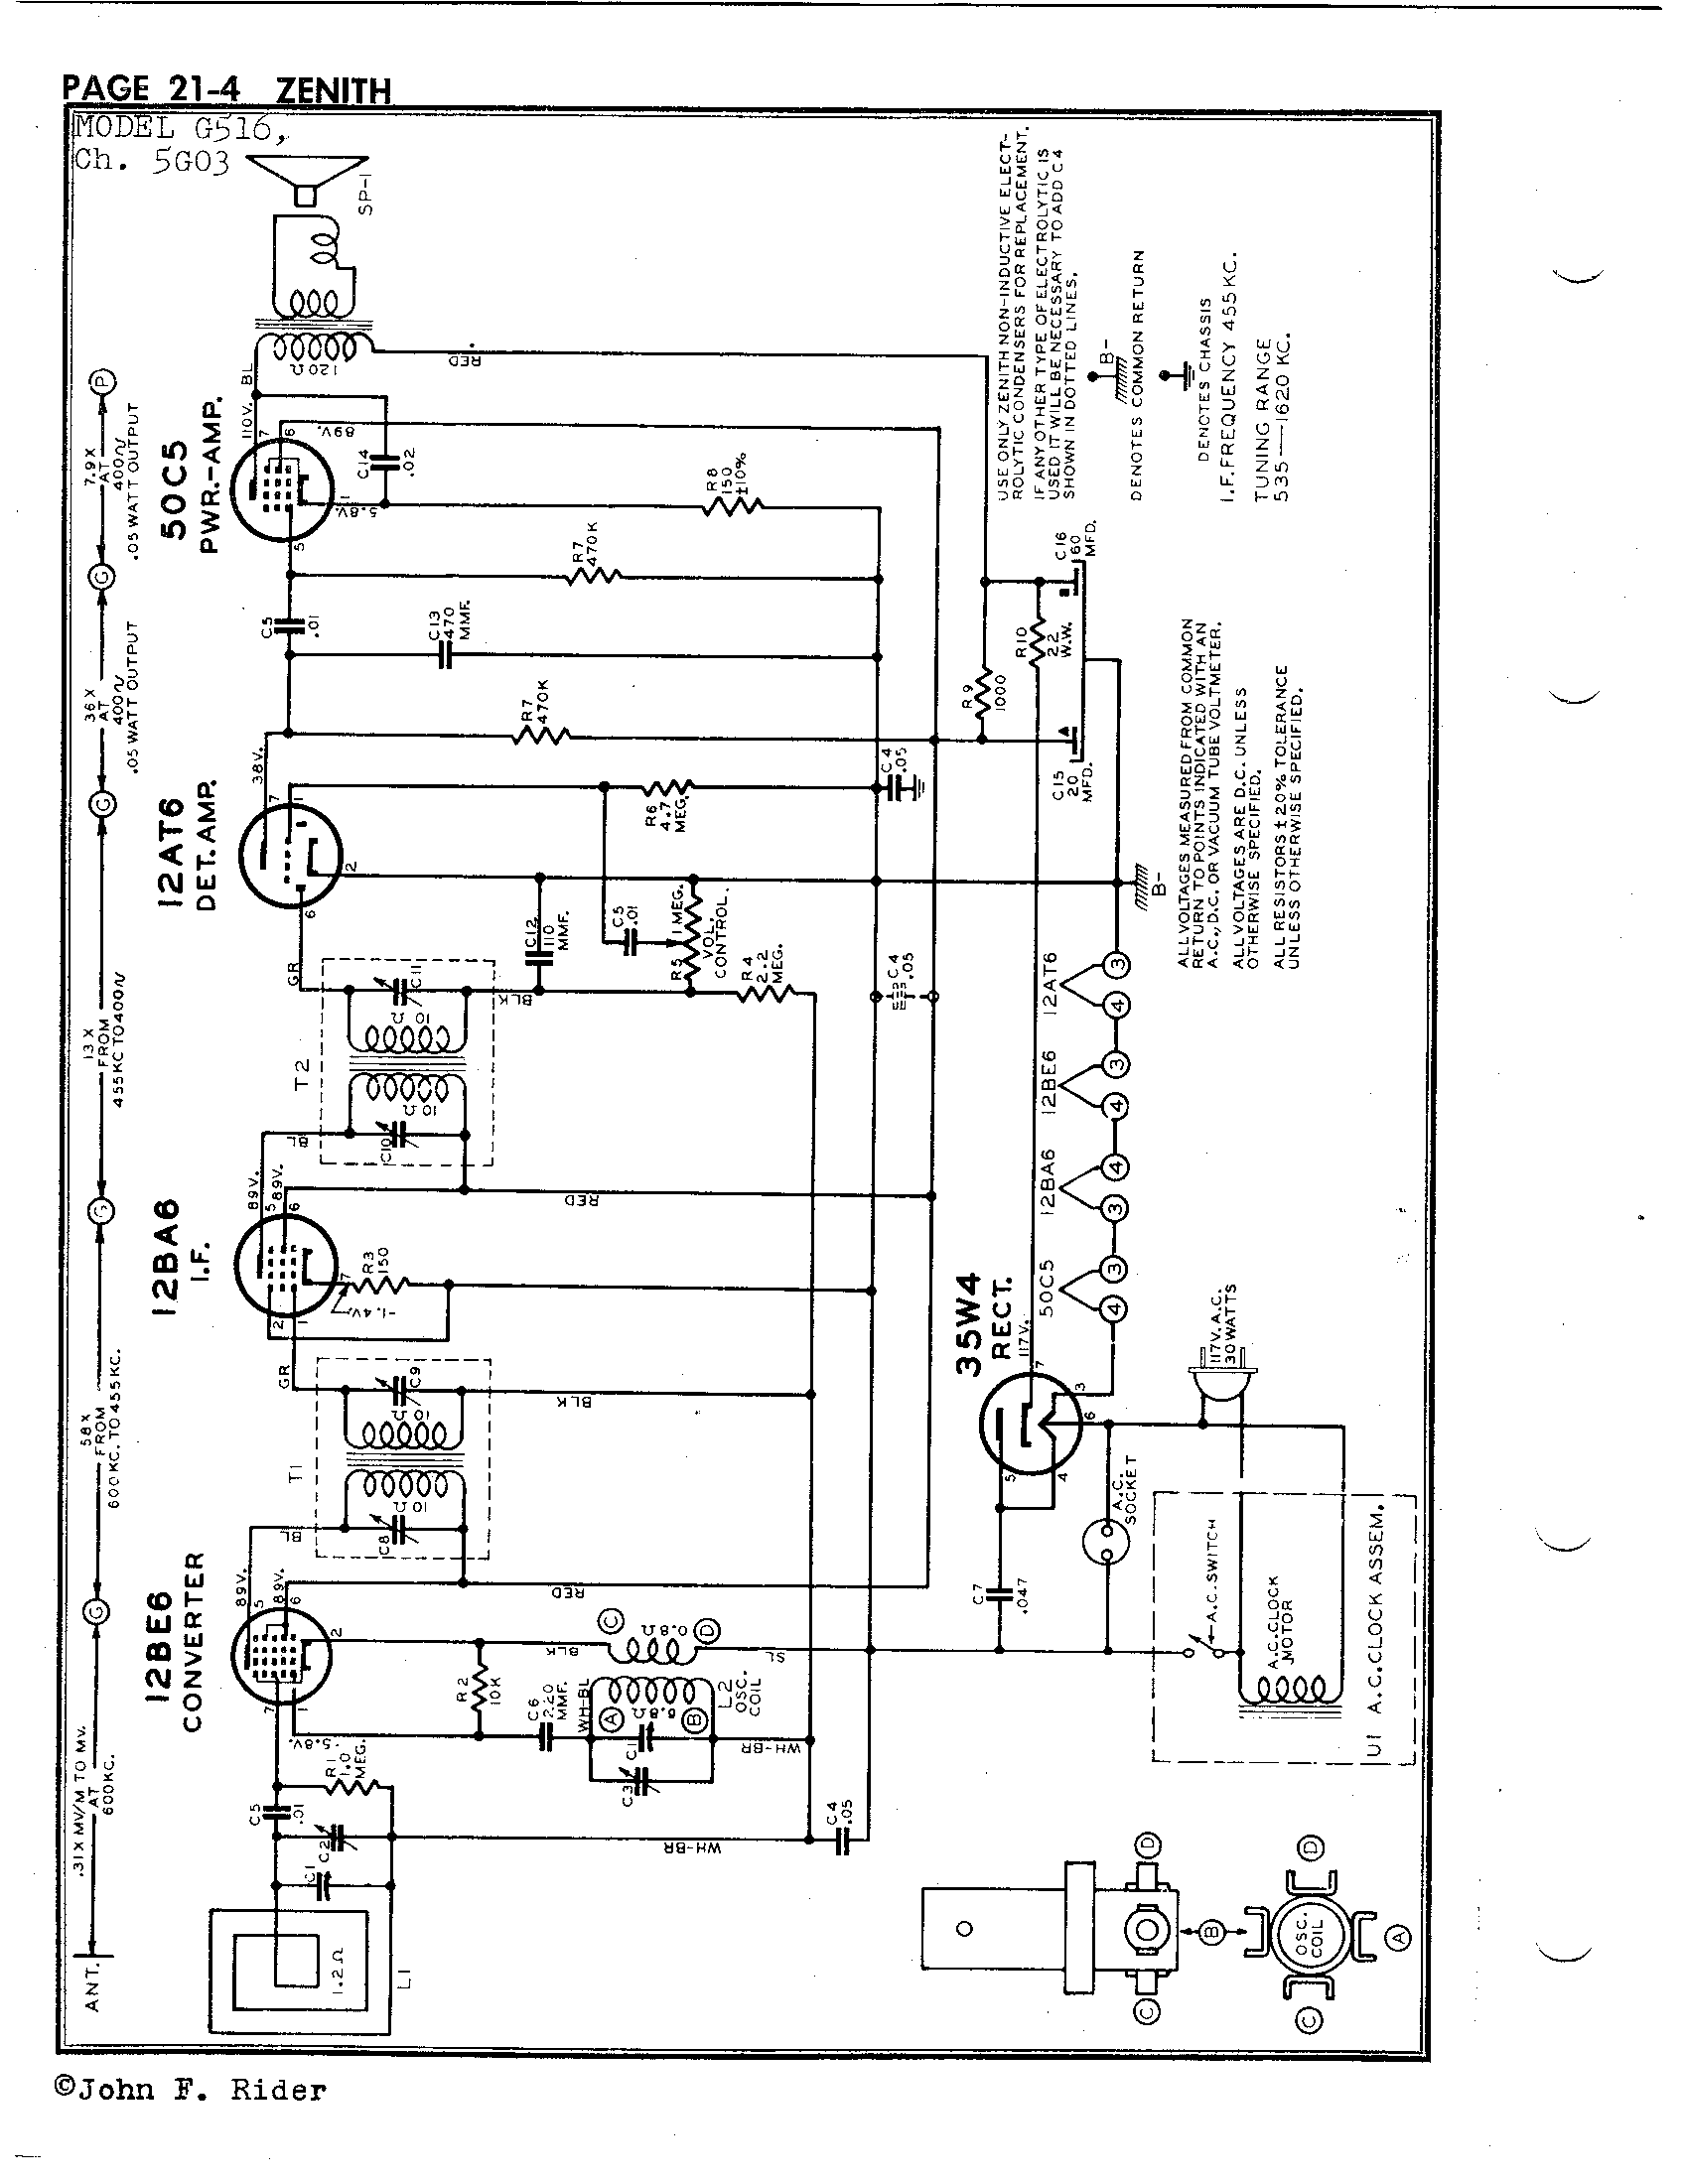 Zenith Radio Corp G516 Antique Electronic Supply. Page 1 4843 Kb Rider Manual Volume 21. Wiring. Zenith Tube Radio Schematics N73 1 At Scoala.co